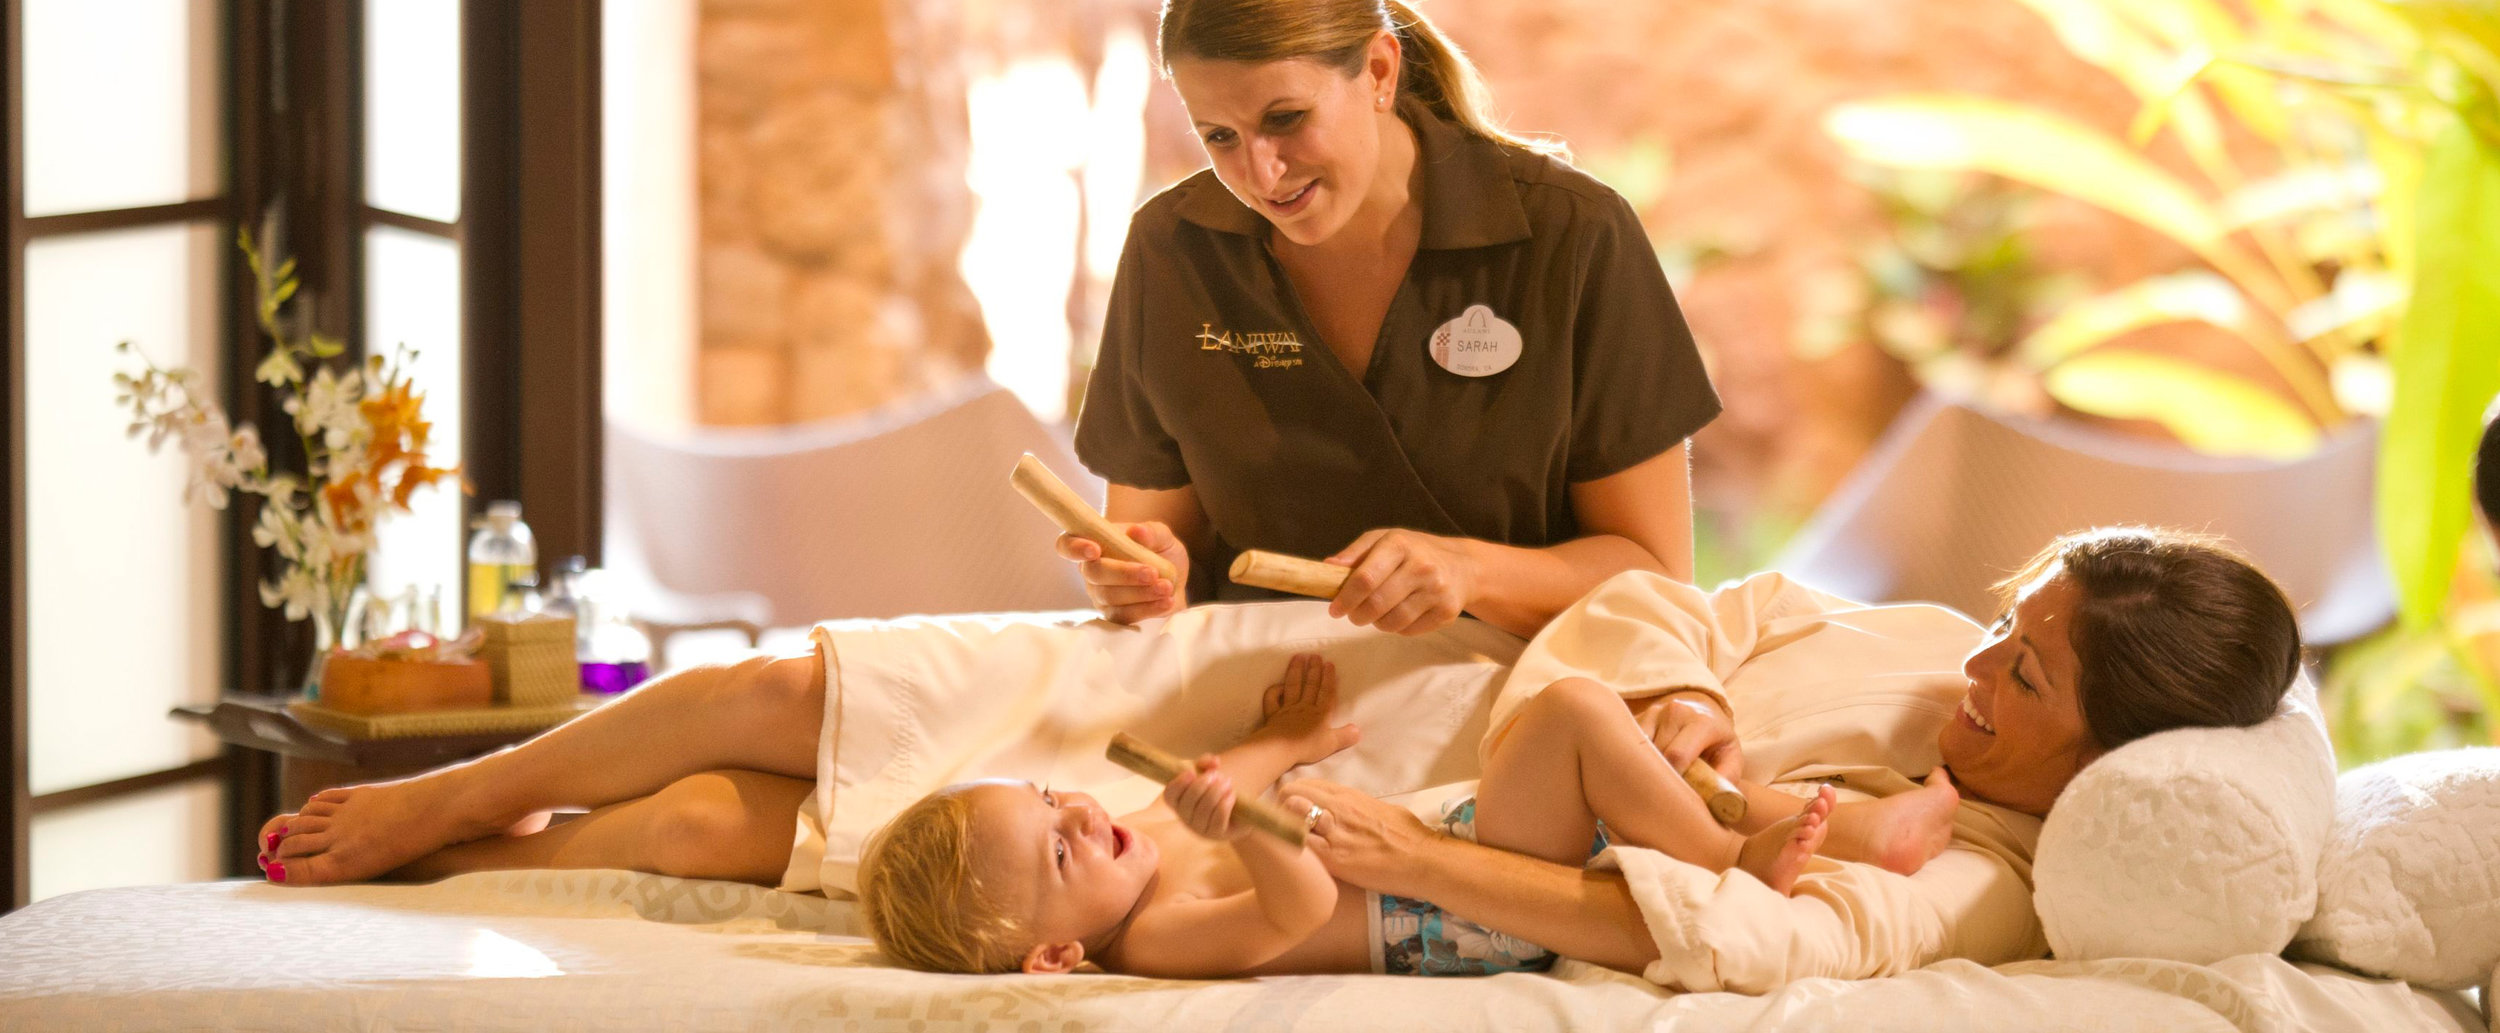 aulani-family-therapies-mother-and-child-massage-hero-g.jpg